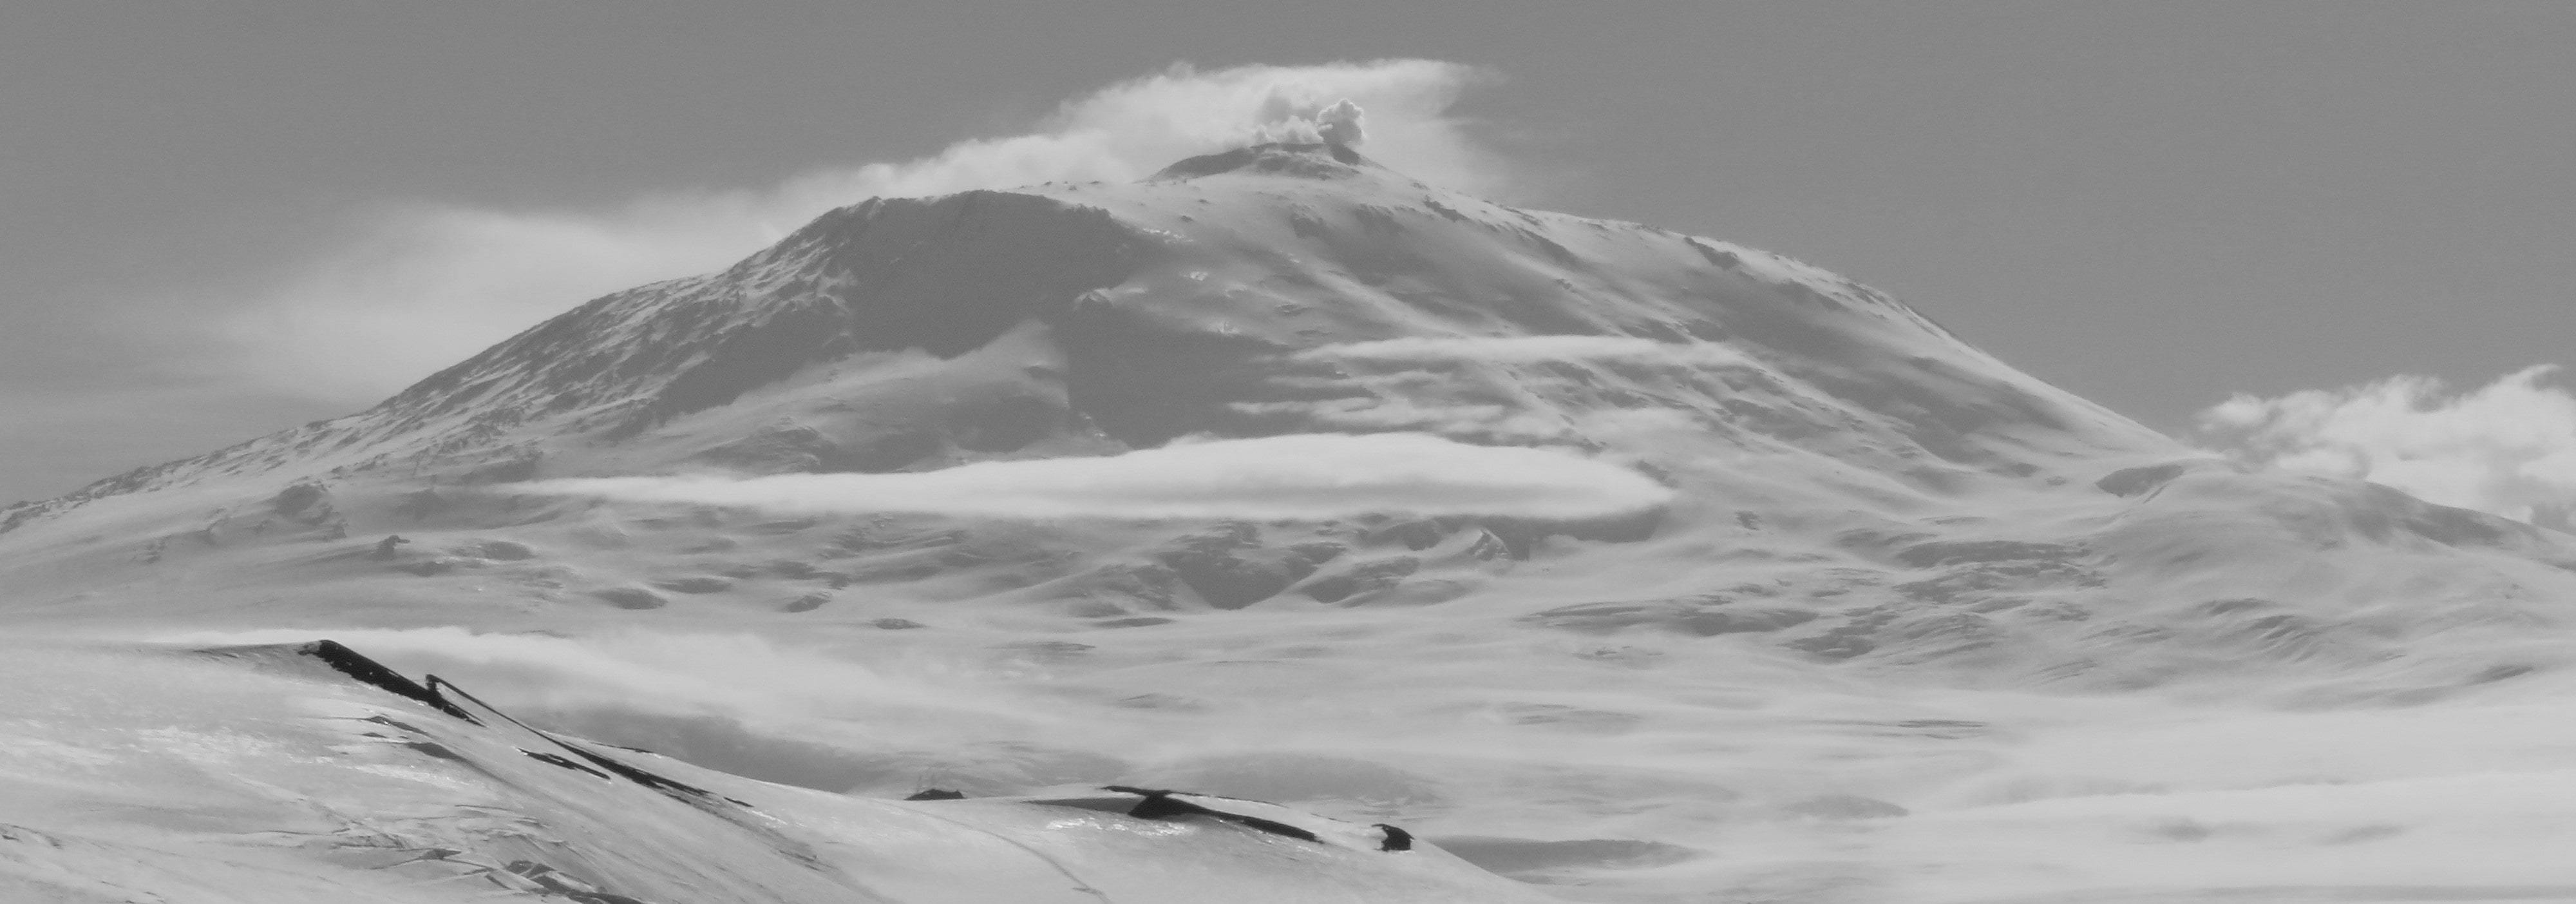 Antarctica - windswept, desolate, potentially deadly